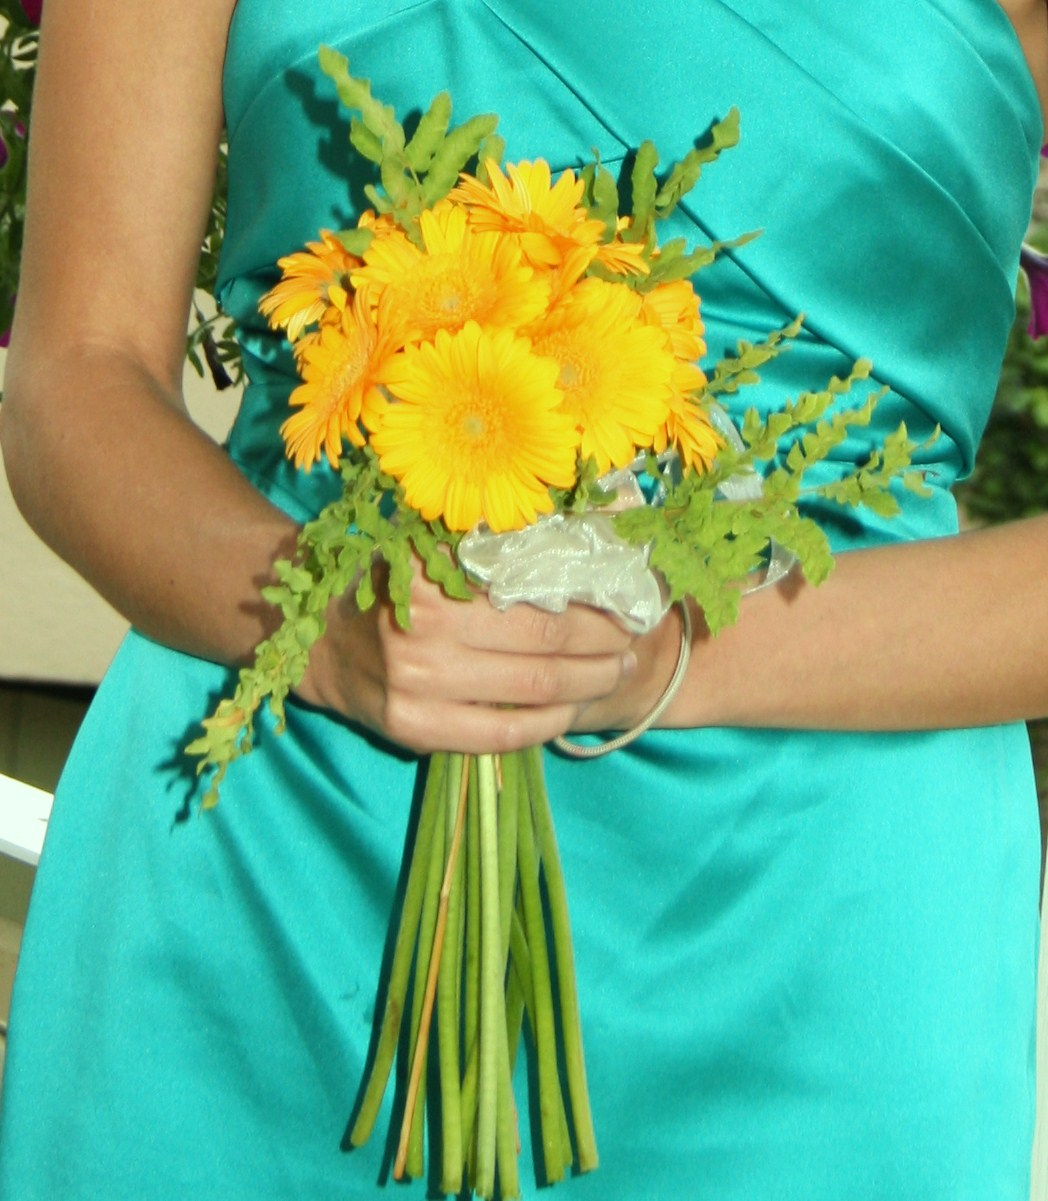 Wedding Flowers Too Expensive : Designinflowers wedding flowers on a budget cheap and chic